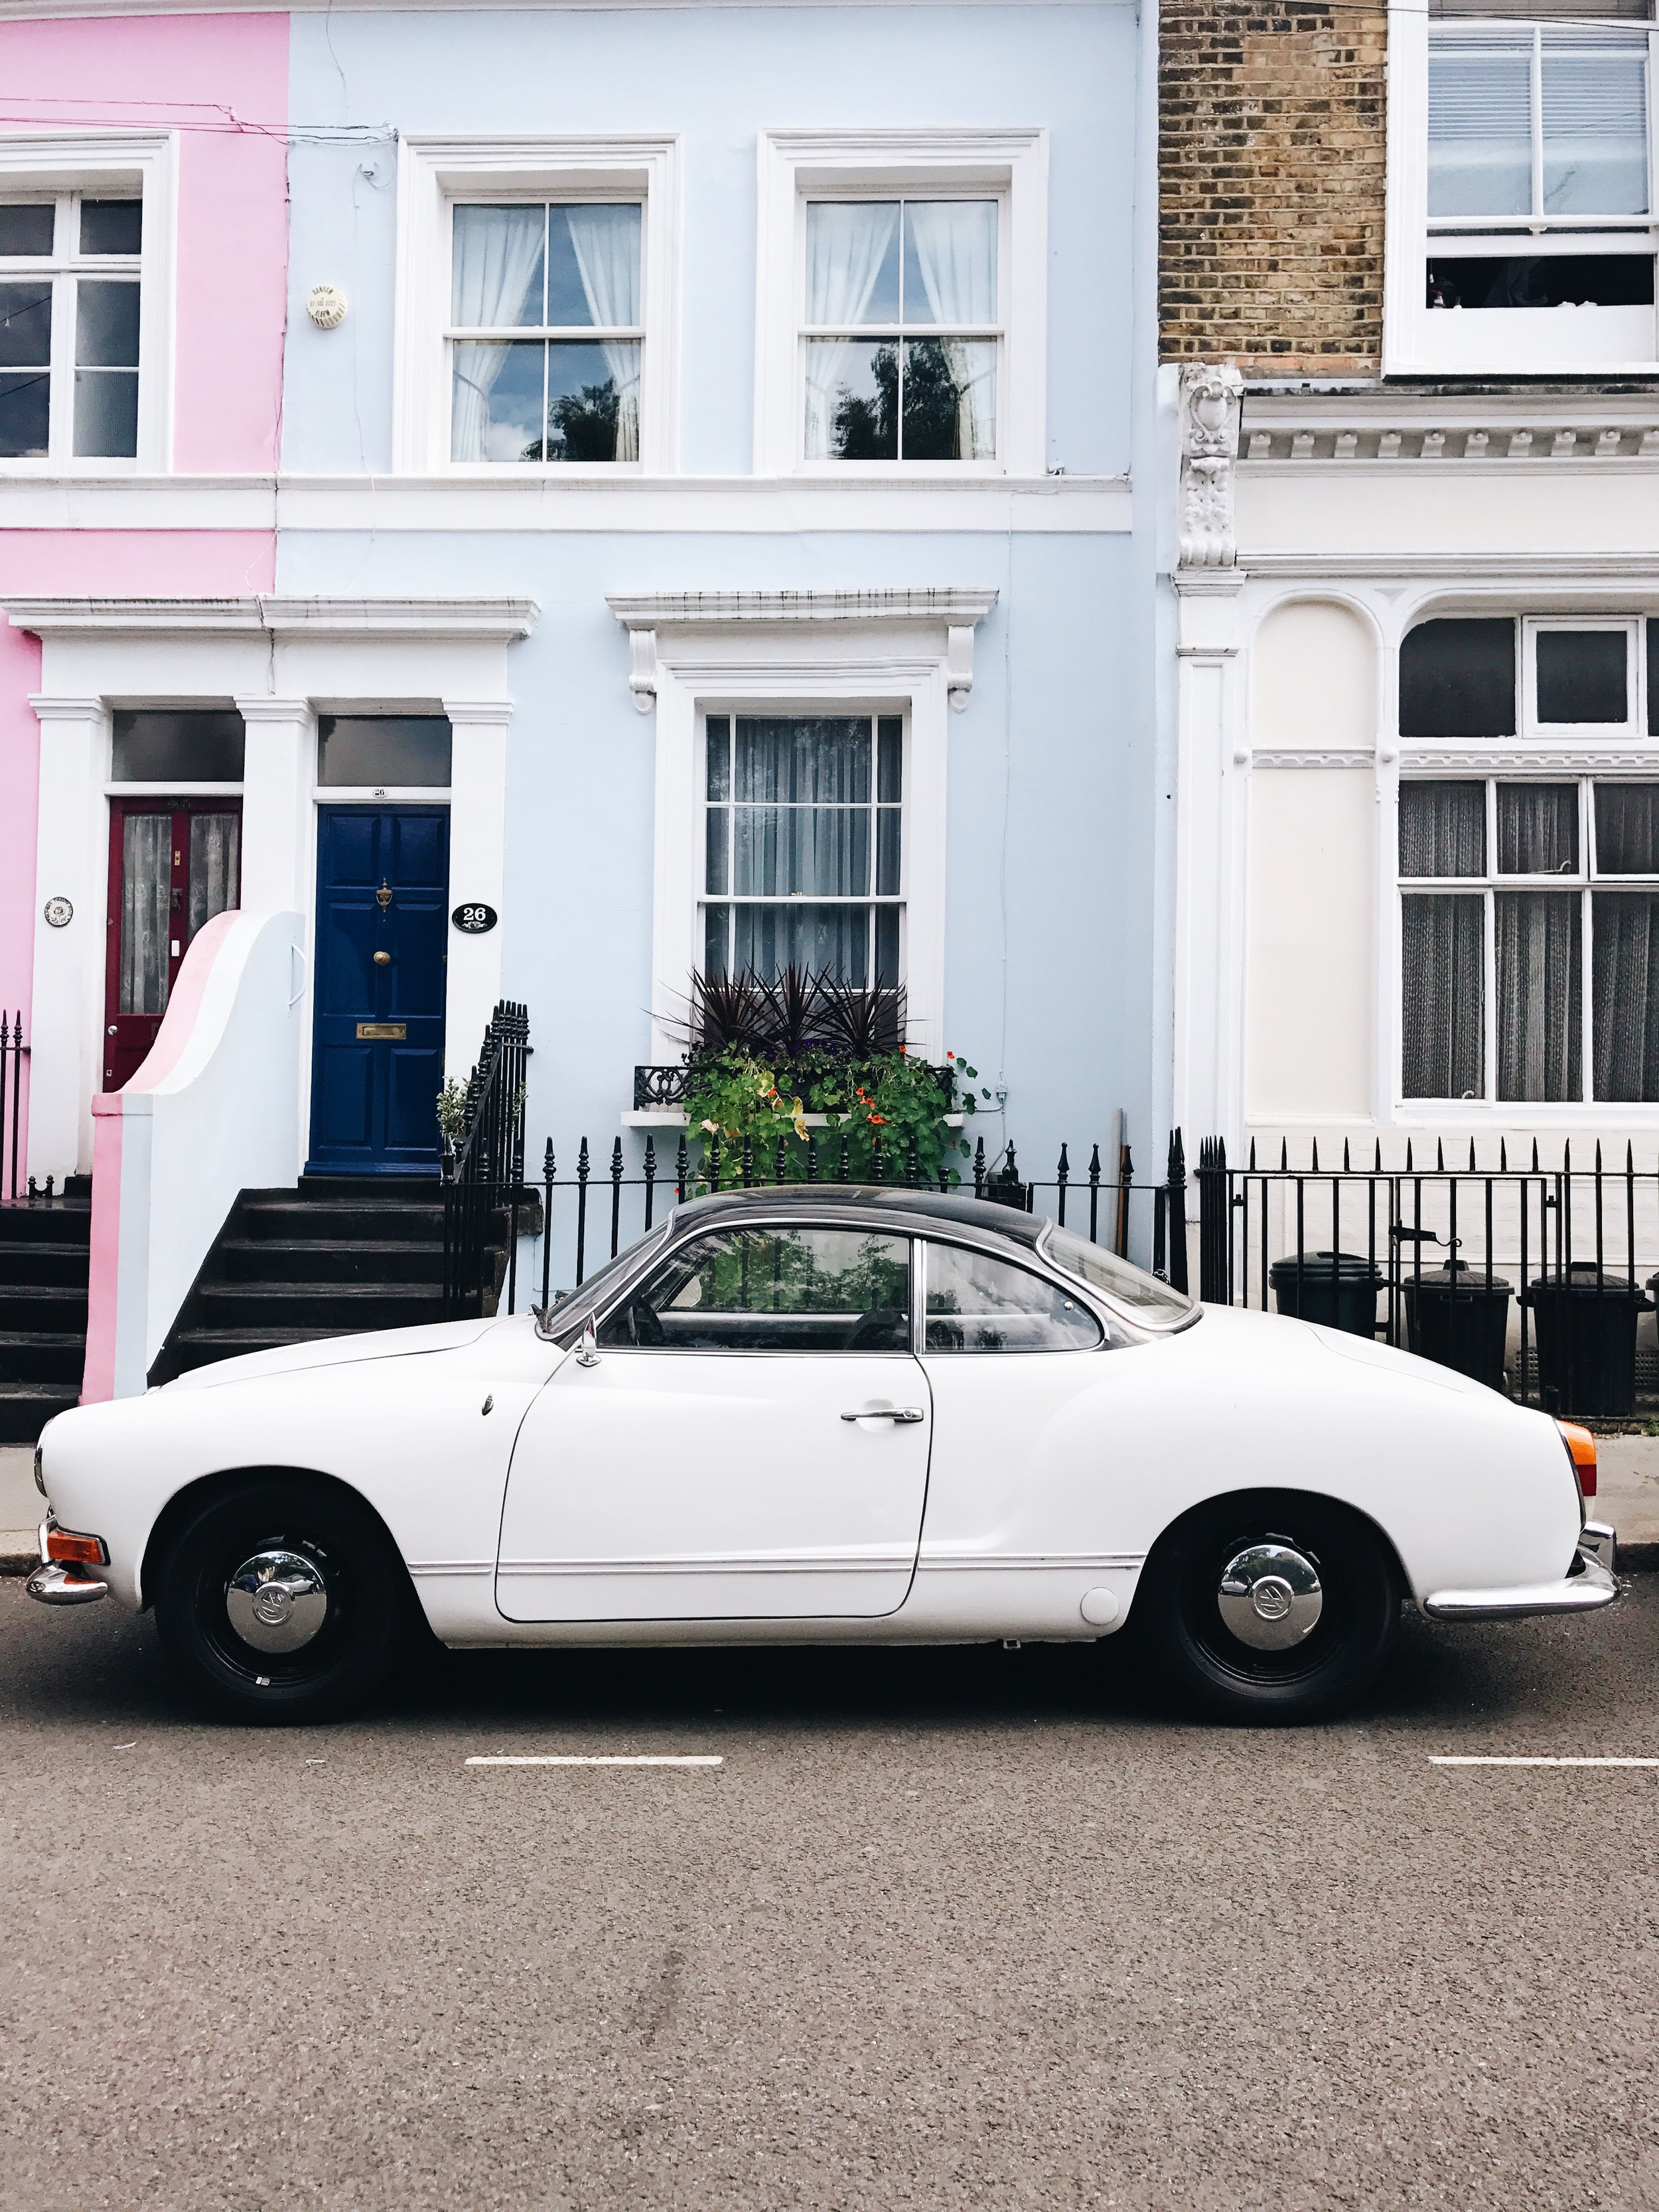 Notting Hill . One of the dreamiest parts of London and an absolute Instagram & photographers dream. Similar to Greenwich, it's been one of those places that I've always wanted to visit. It has the prettiest and most colourful houses - those kind that you can probably only dream of owning, one day.  My visit to Notting Hill was pretty fleeting, having only spent a few hours there one afternoon, but I still absolutely loved it. We didn't get the chance to sit down and find somewhere beautiful for coffee or lunch but instead,  we spent the afternoon simply wandering around and taking photos. Every road we went down there was another building or house to be in awe of.